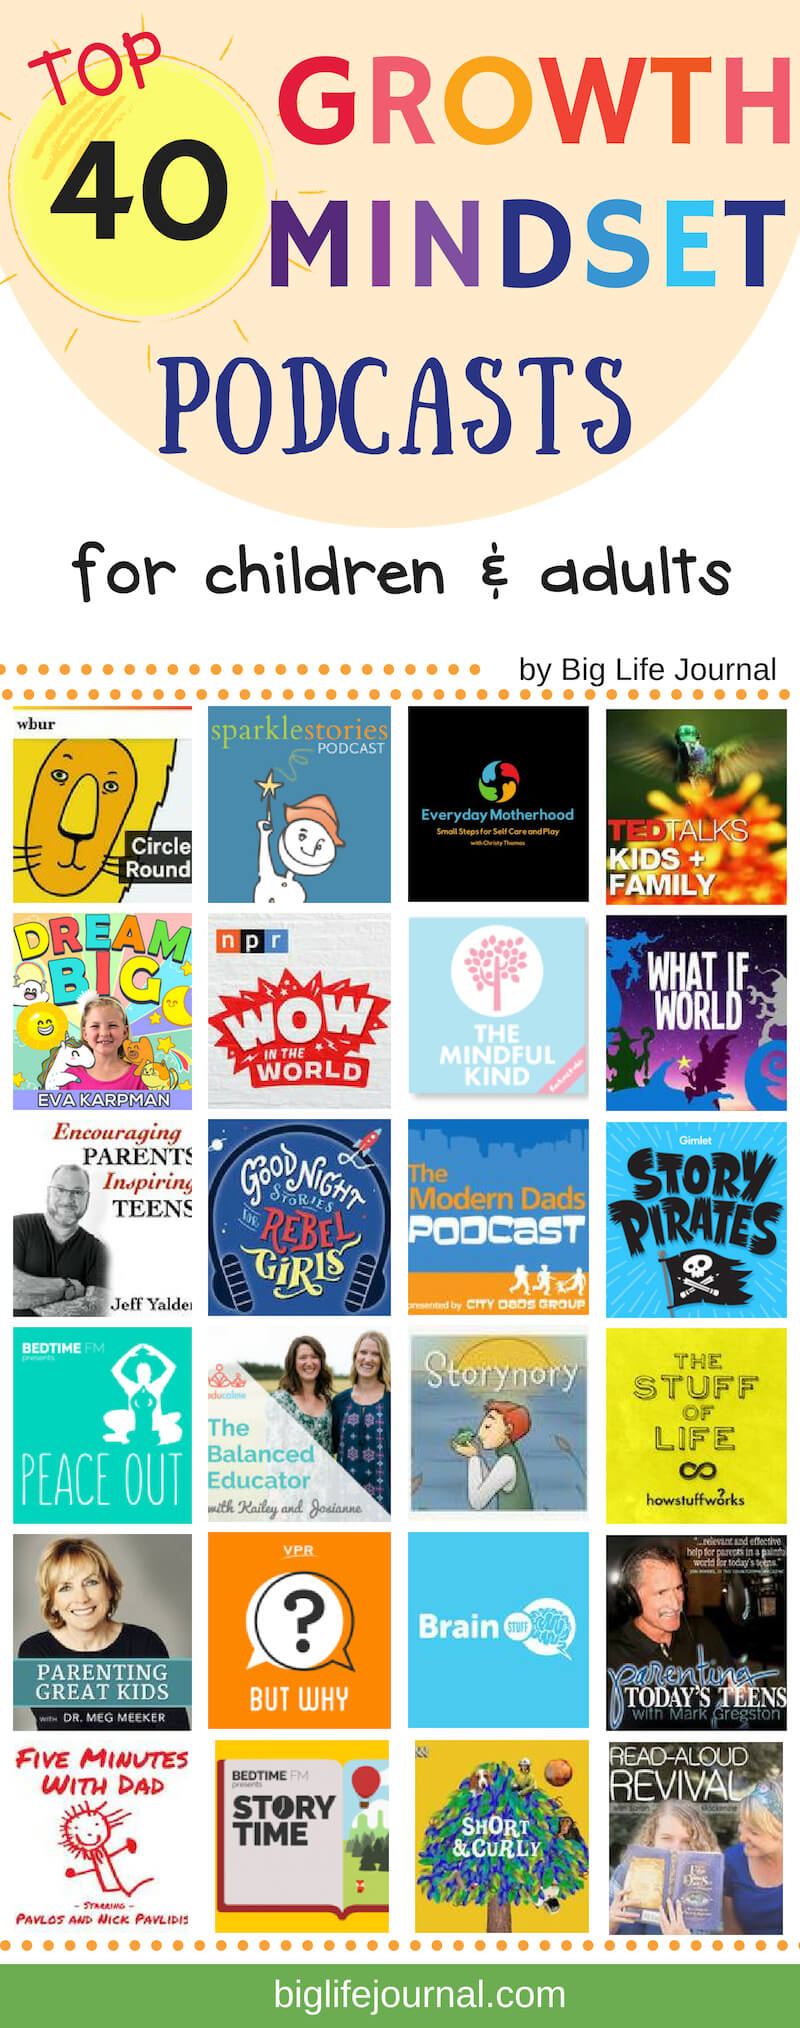 Top 40 Podcasts for families